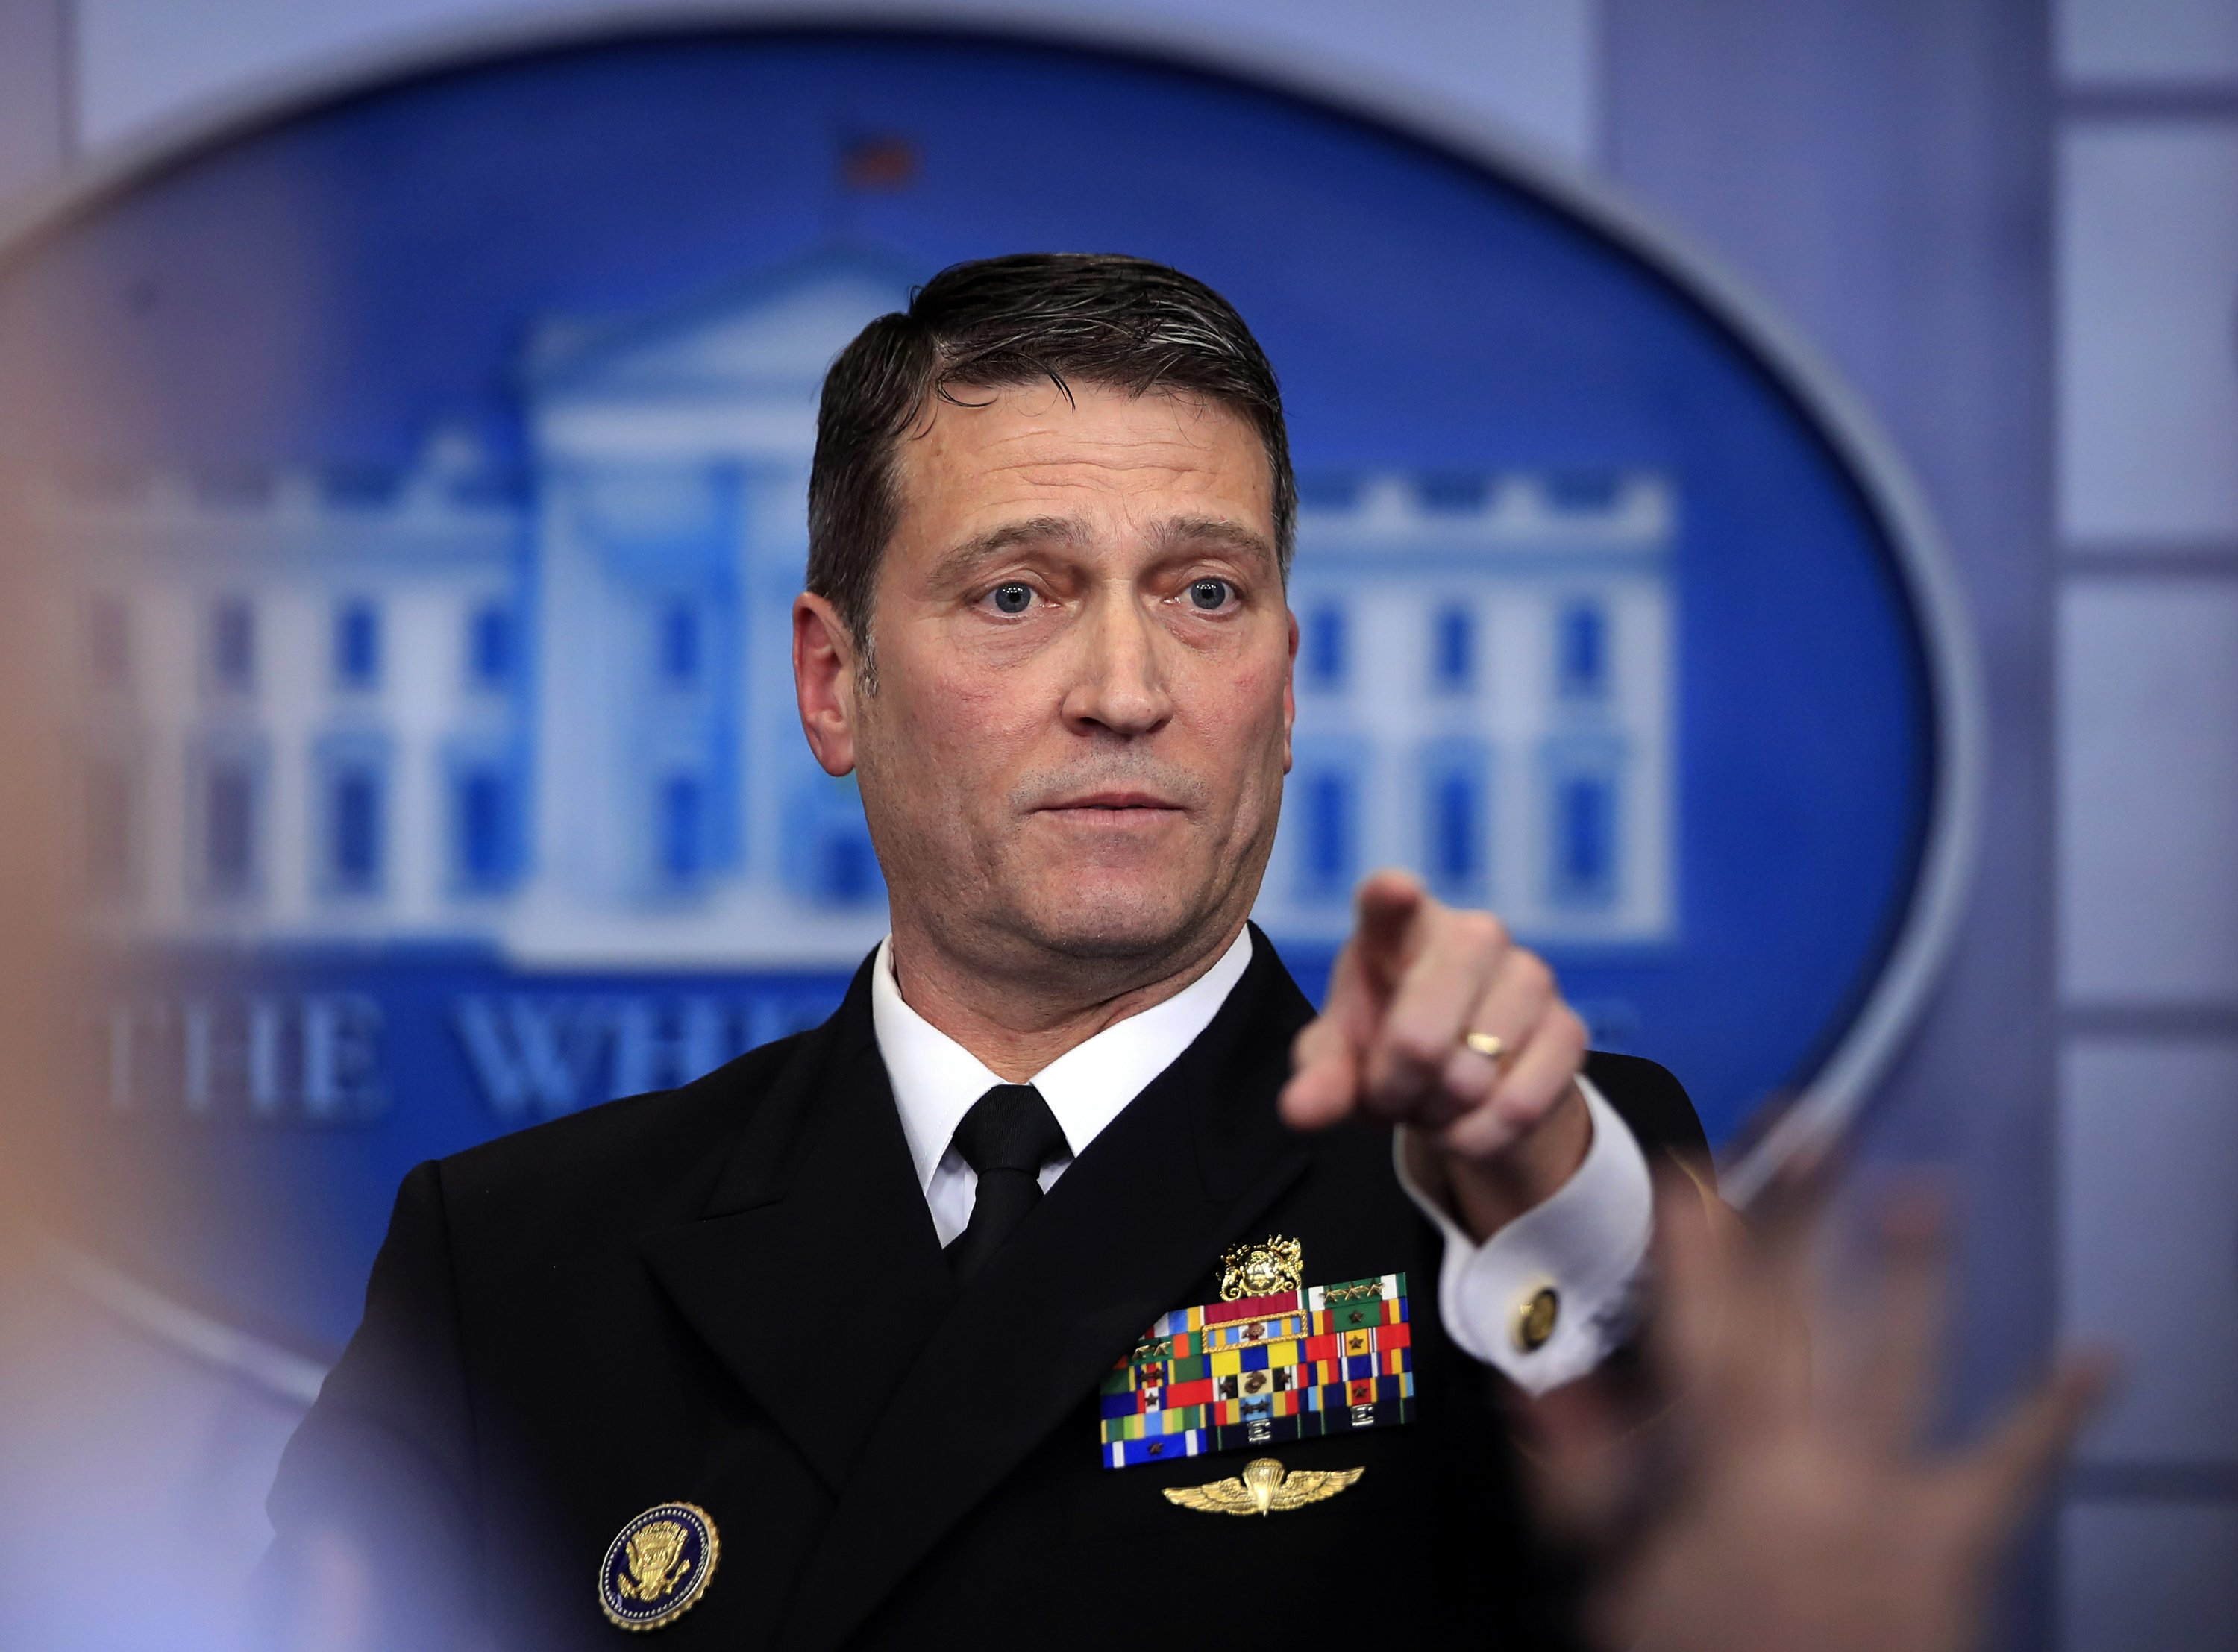 The Latest: Trump asked doctor for cognitive test